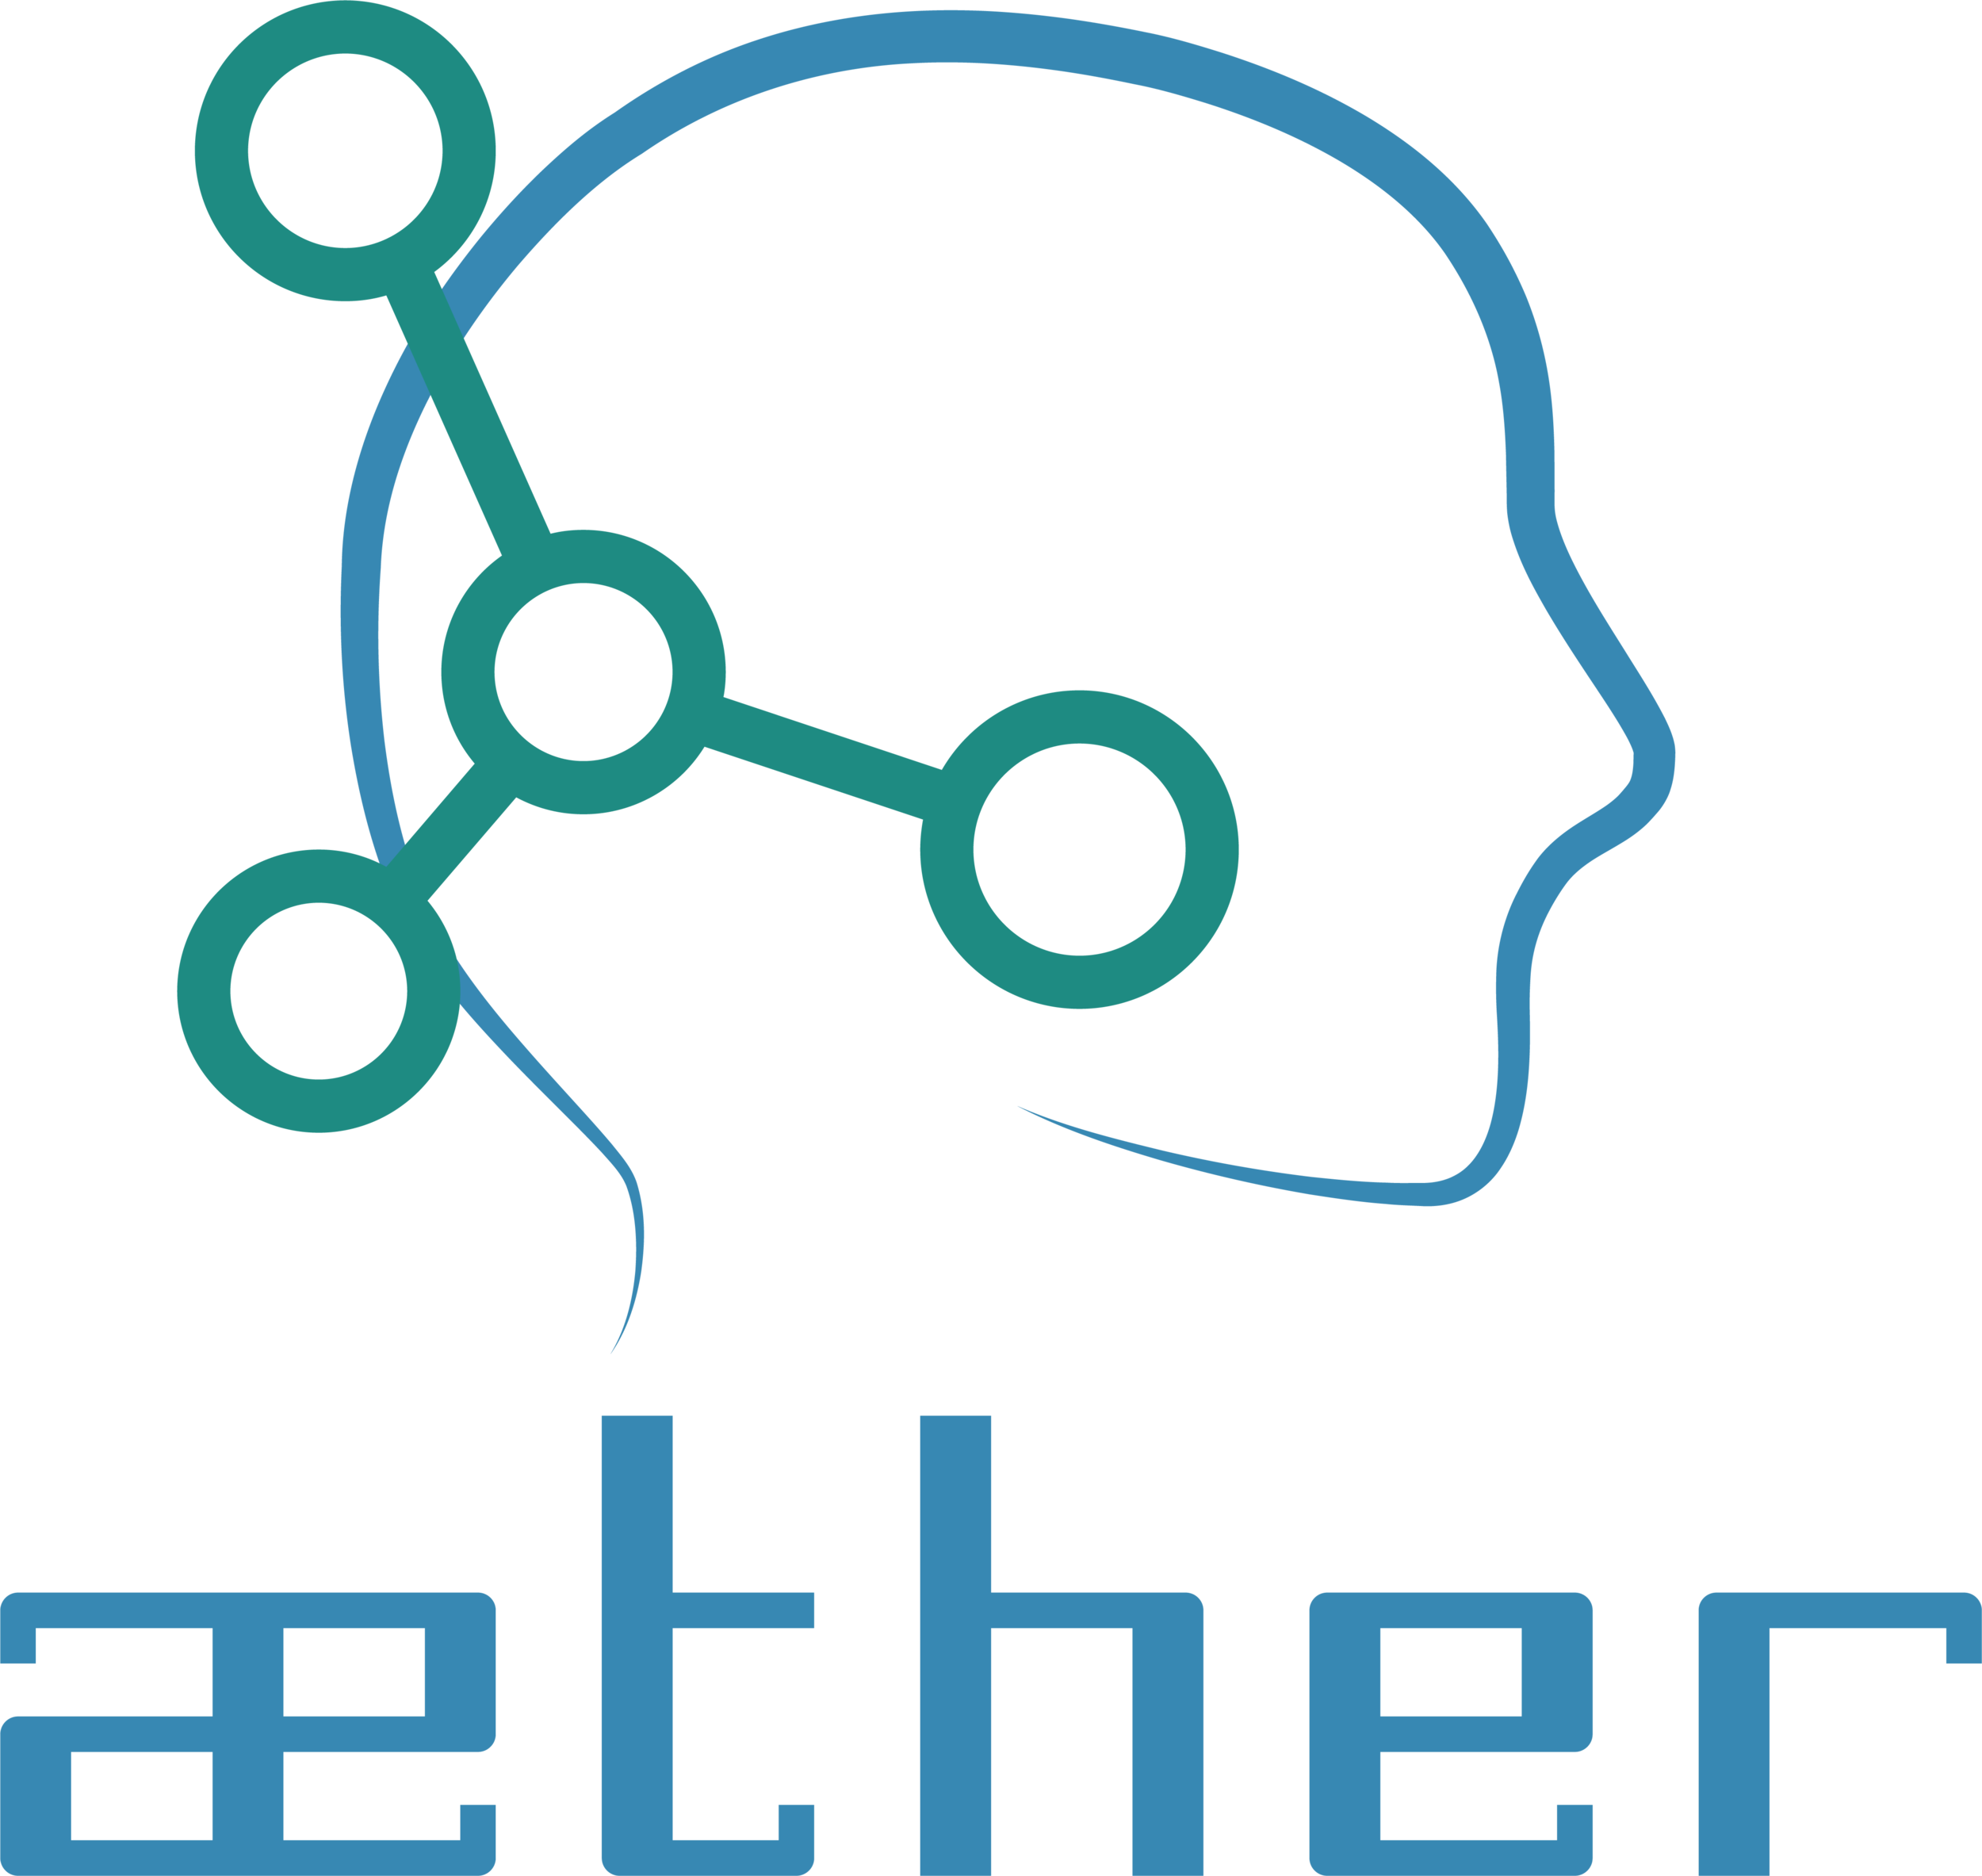 aether logo.png